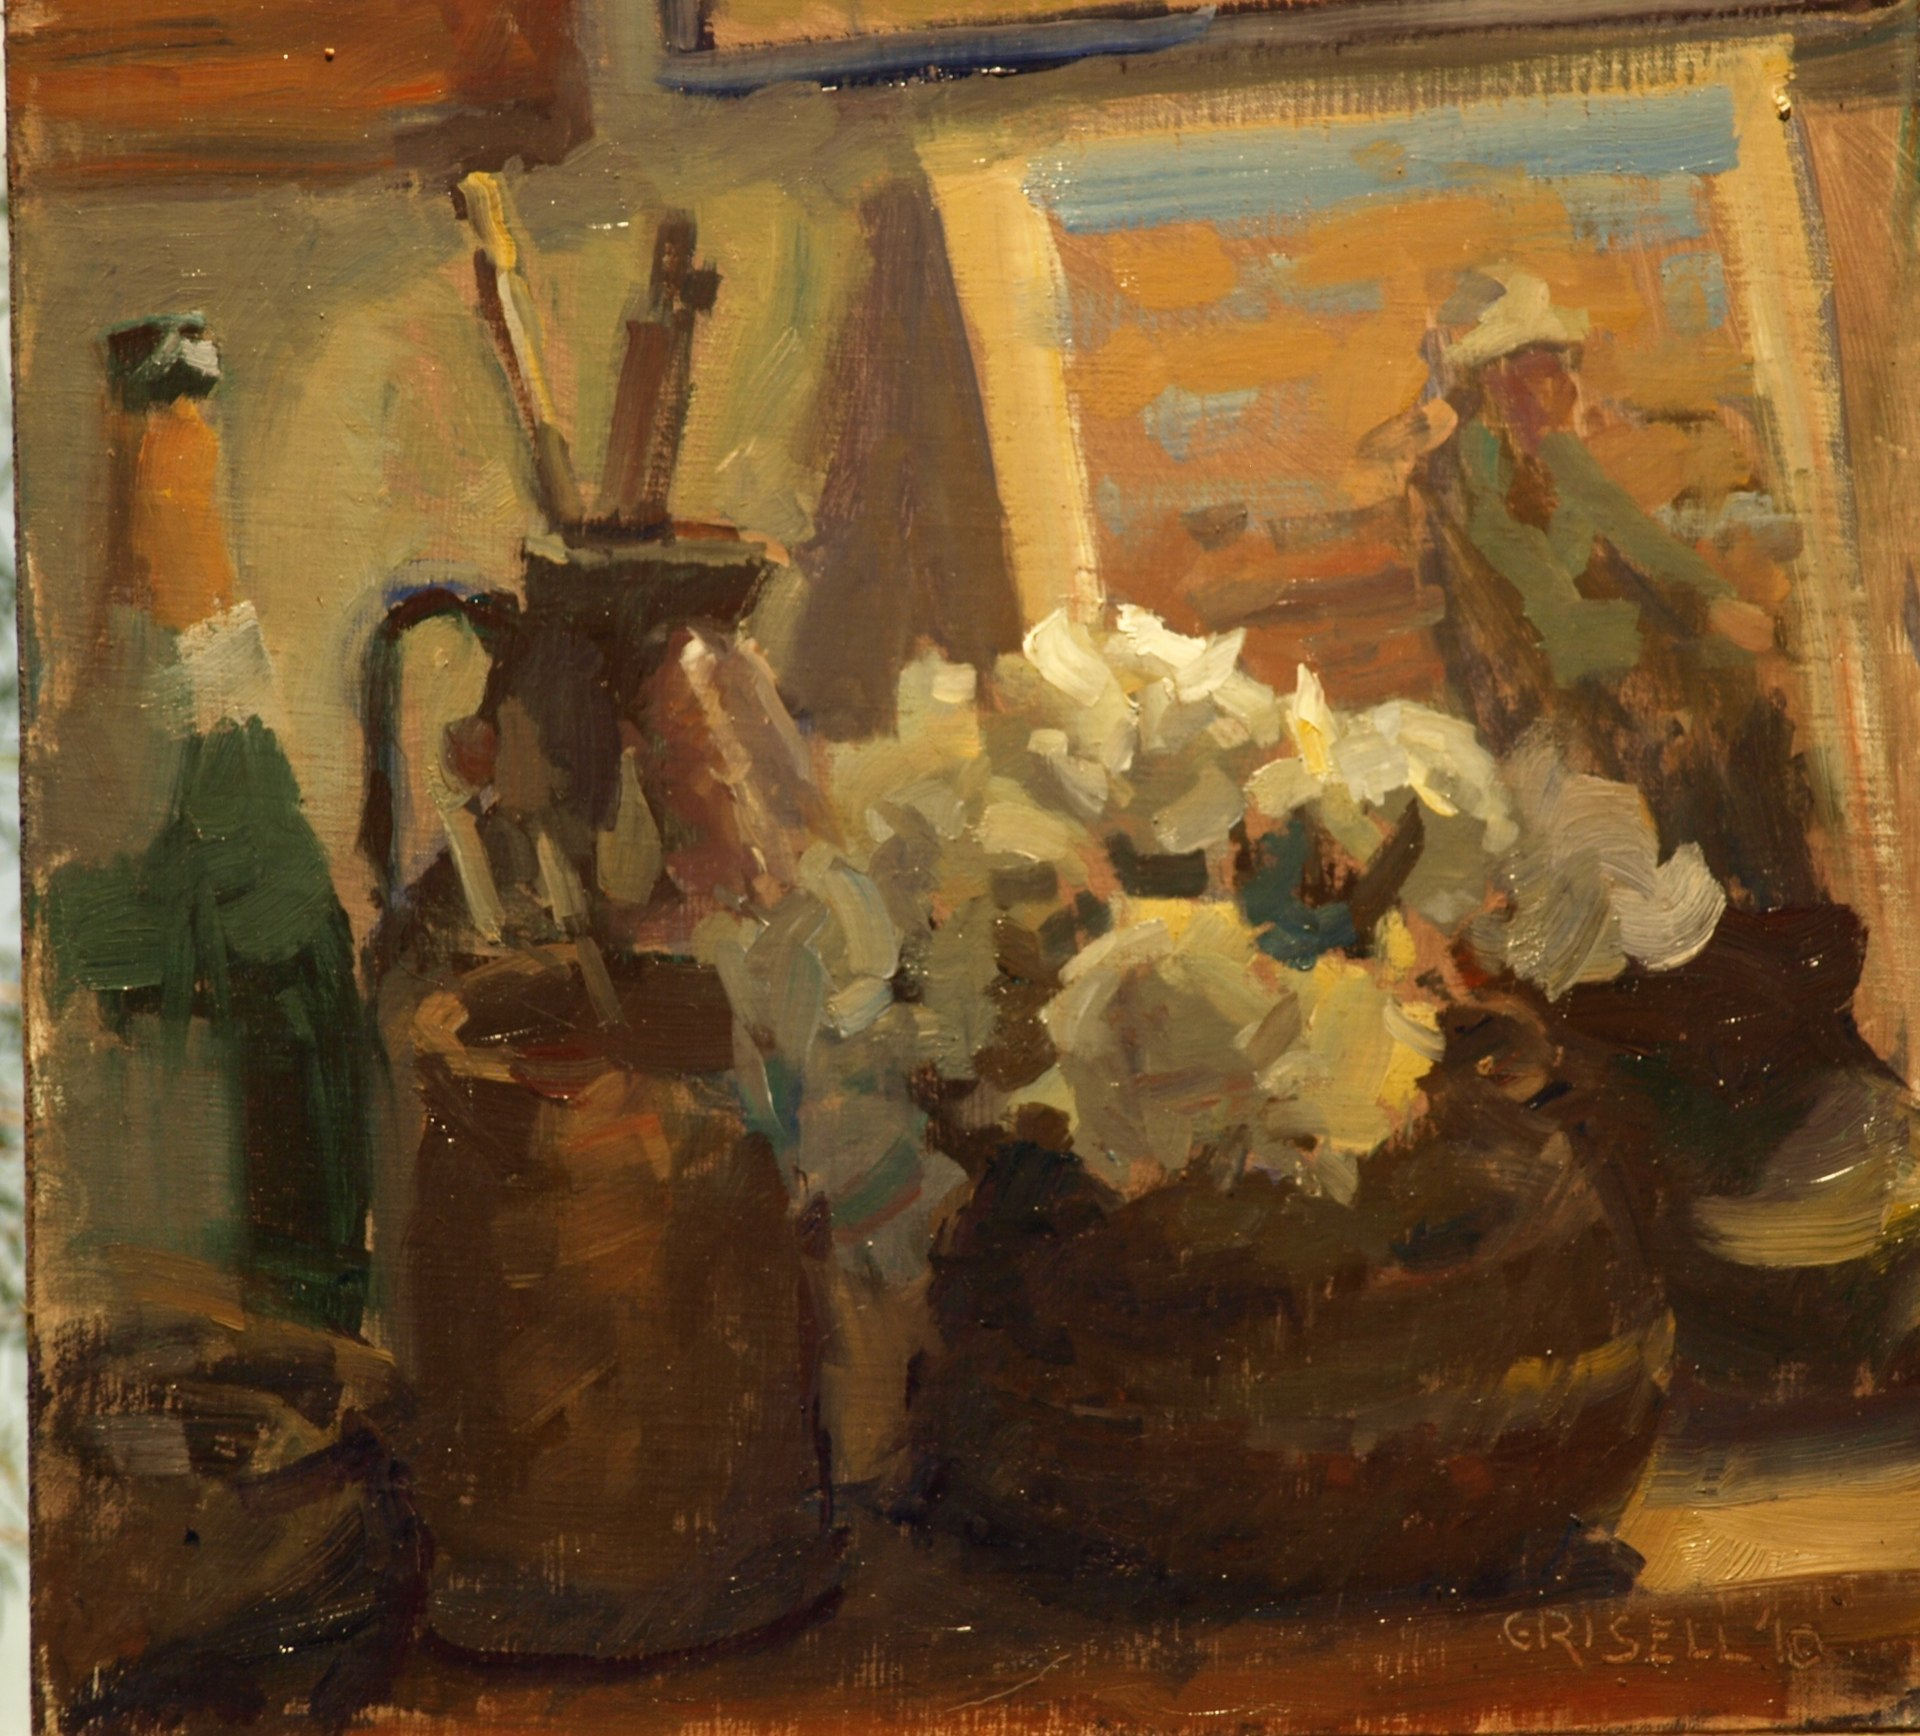 Studio Still Life, Oil on Panel, 12 x 12 Inches, by Susan Grisell, $275